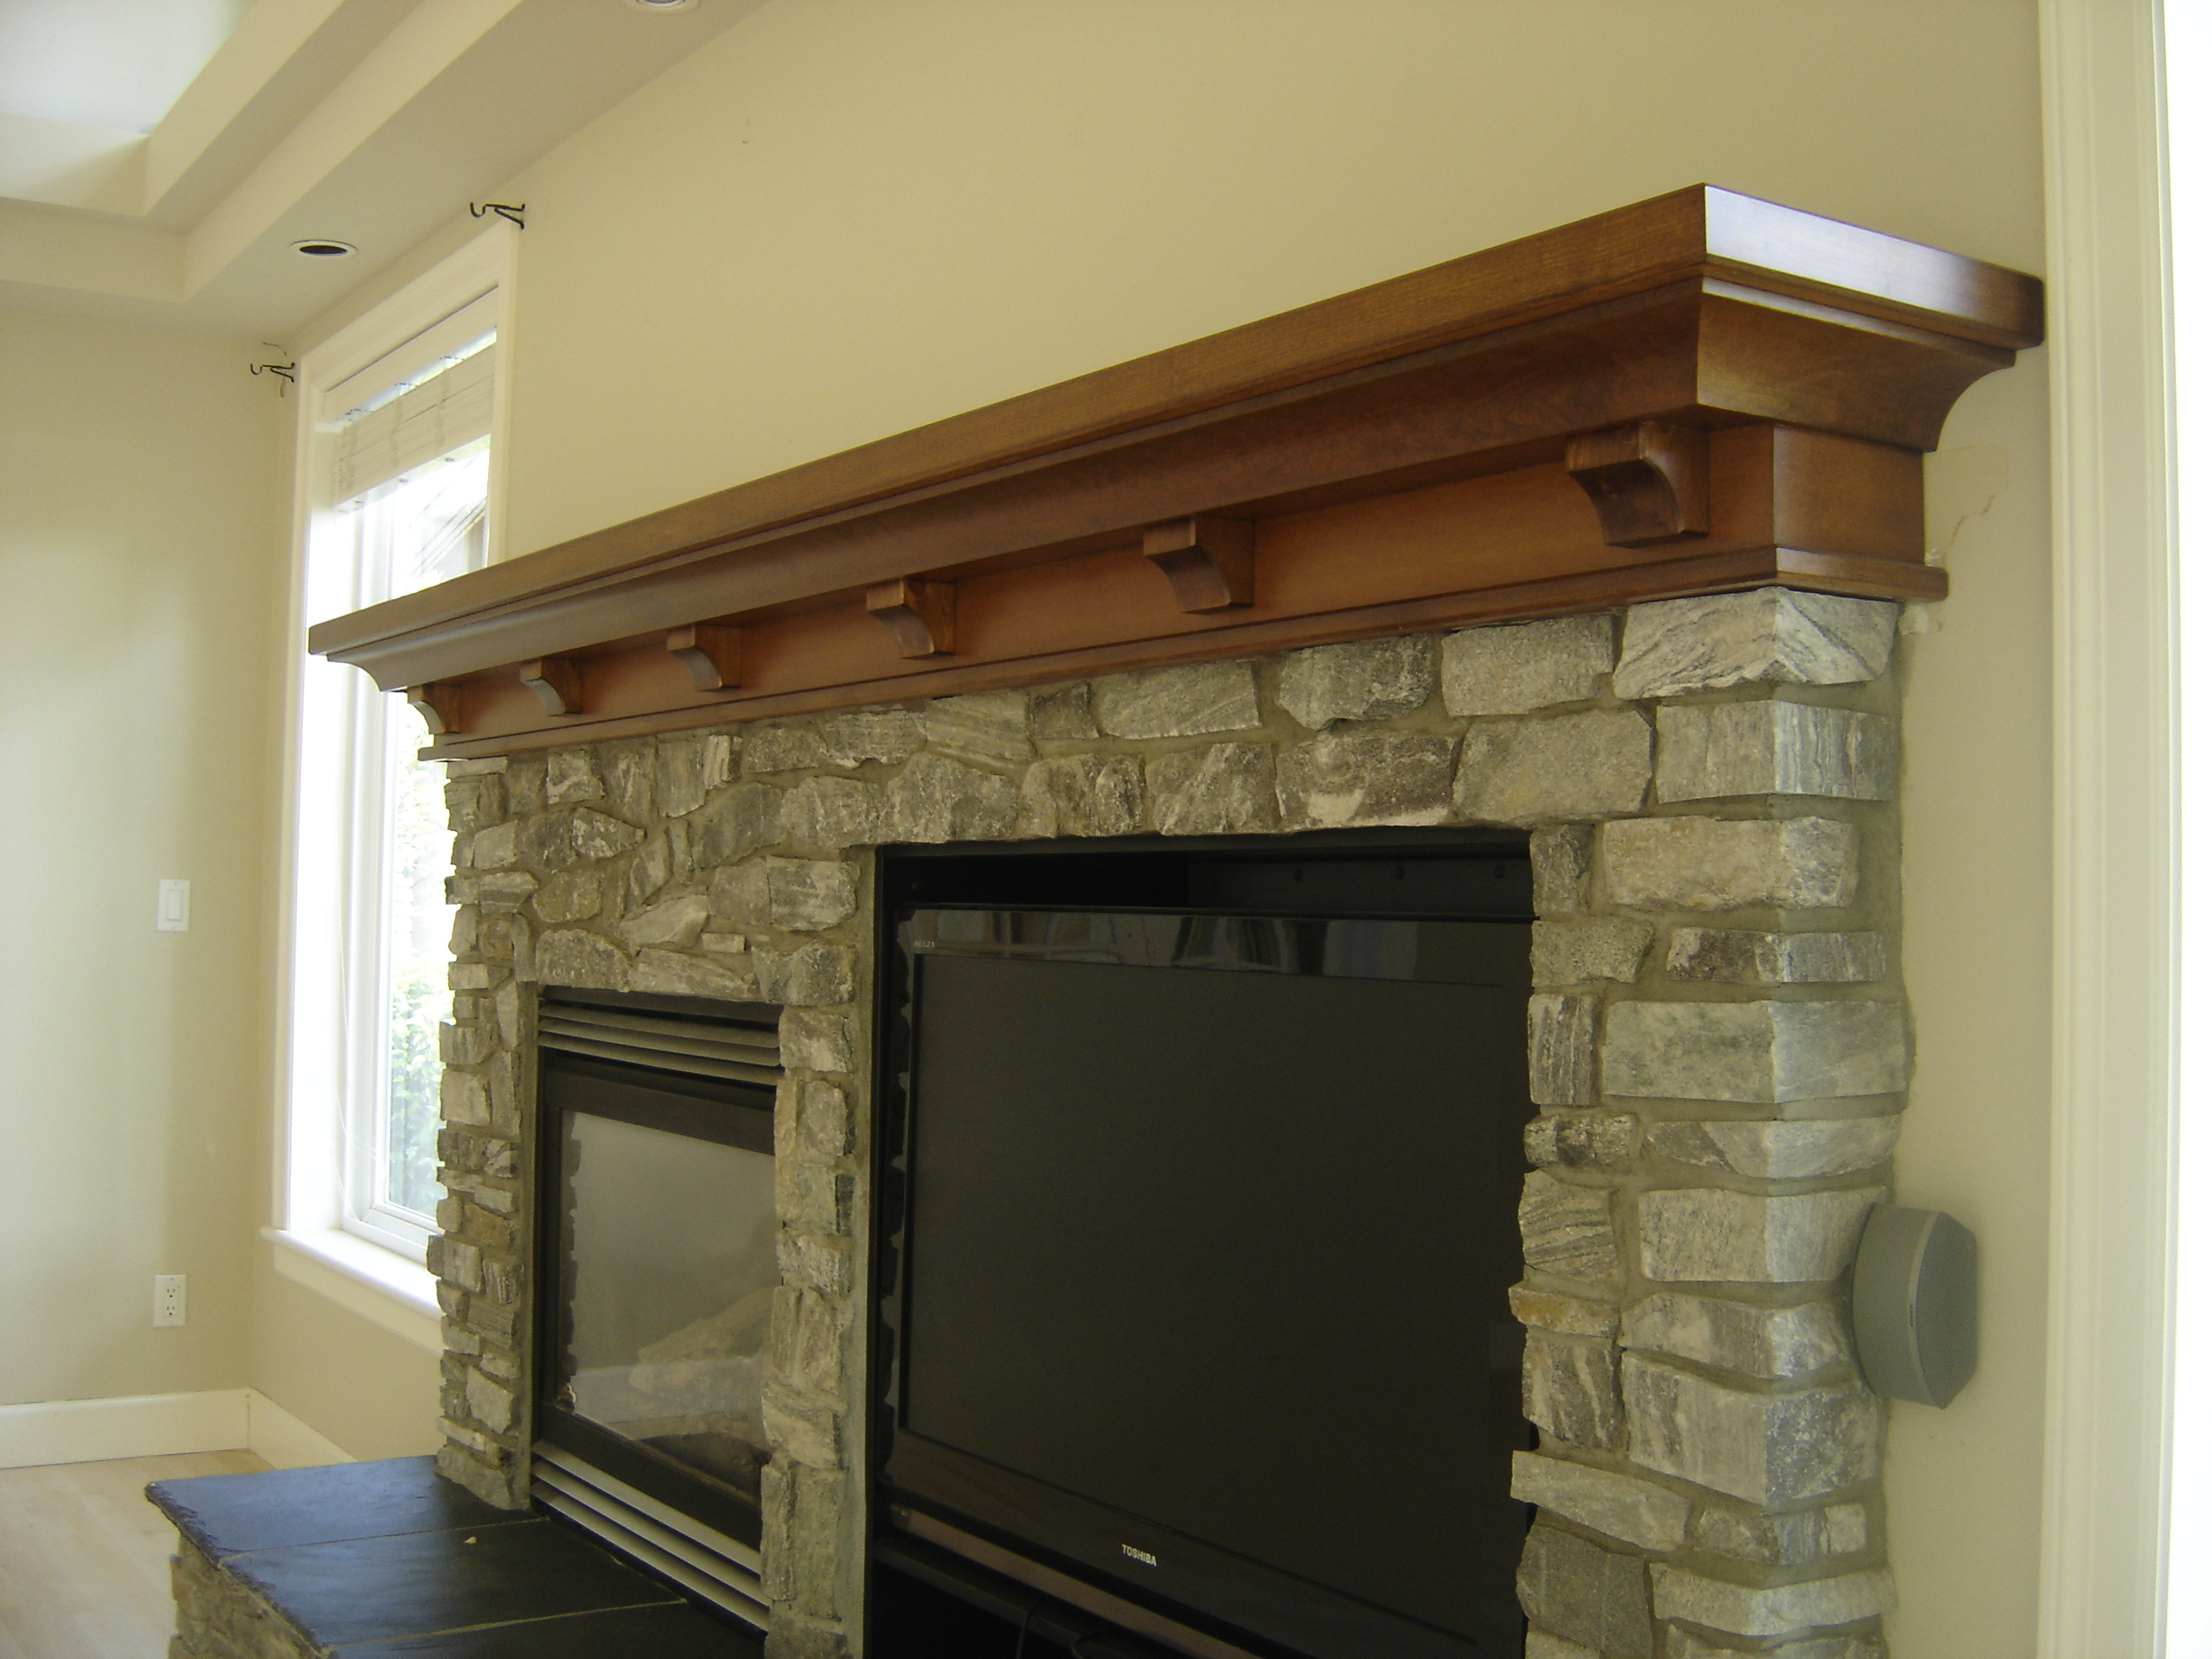 architectural perfect stone faux pretty of cast very sale for in furniture mantel fireplace features new